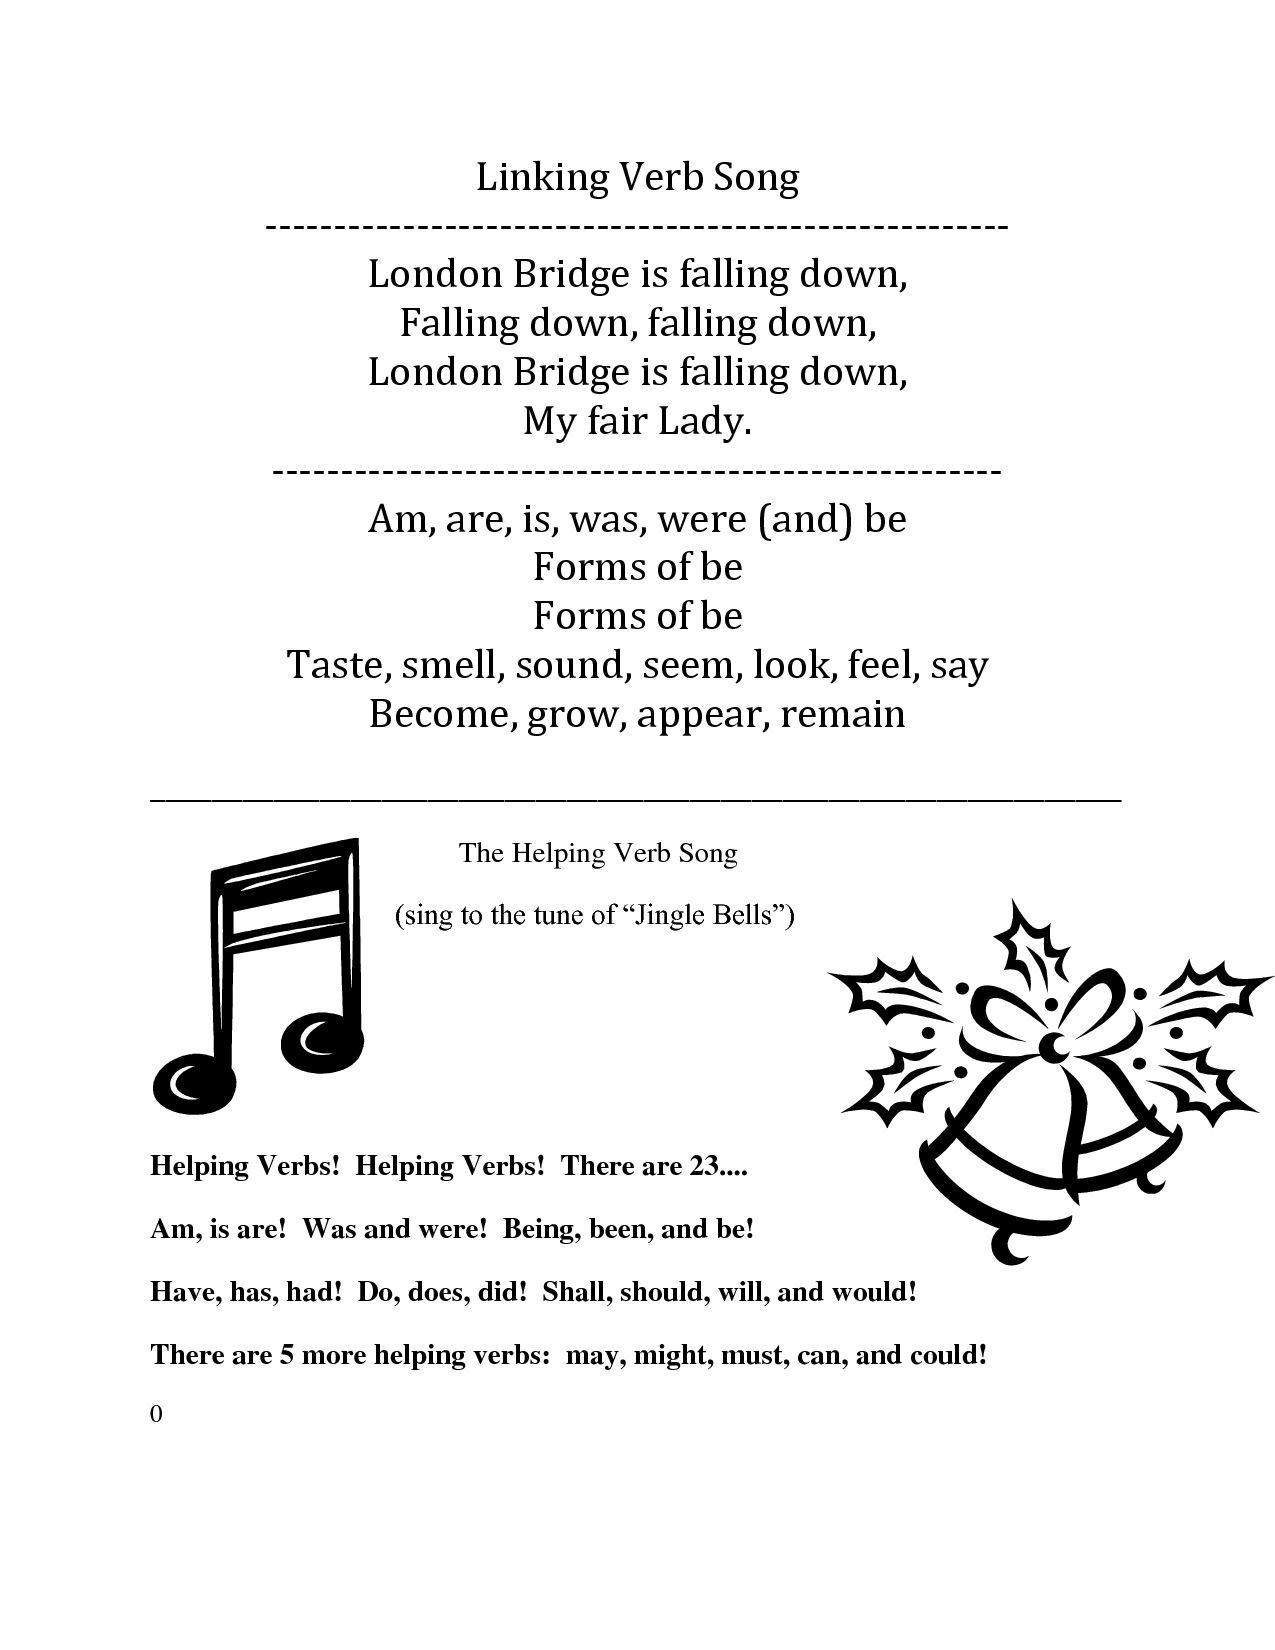 Linking Verb Song Lyrics To London Bridge Is Falling Down And Helping Verb Song To Jingle